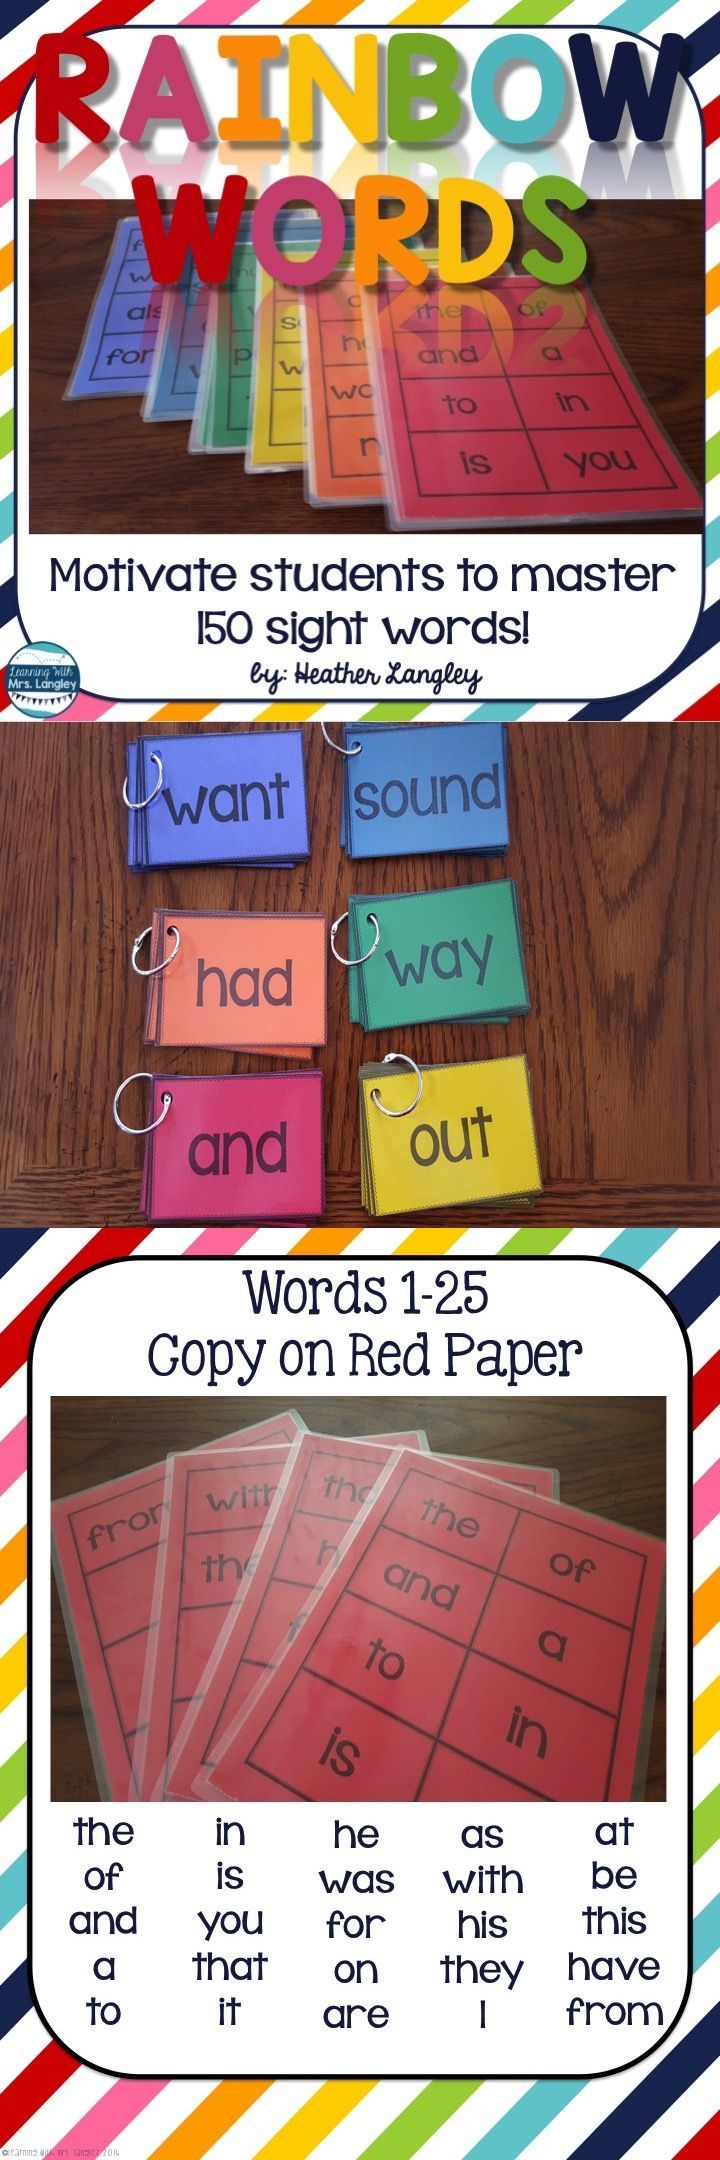 Rainbow Words are a fun and engaging way to practice SIGHT WORDS in the classroom and at home. Students work their way through each level (25 words per color of the rainbow). Using these color coded cards students can differentiate their own word work time by using their own cards with easy to prep word work activities.